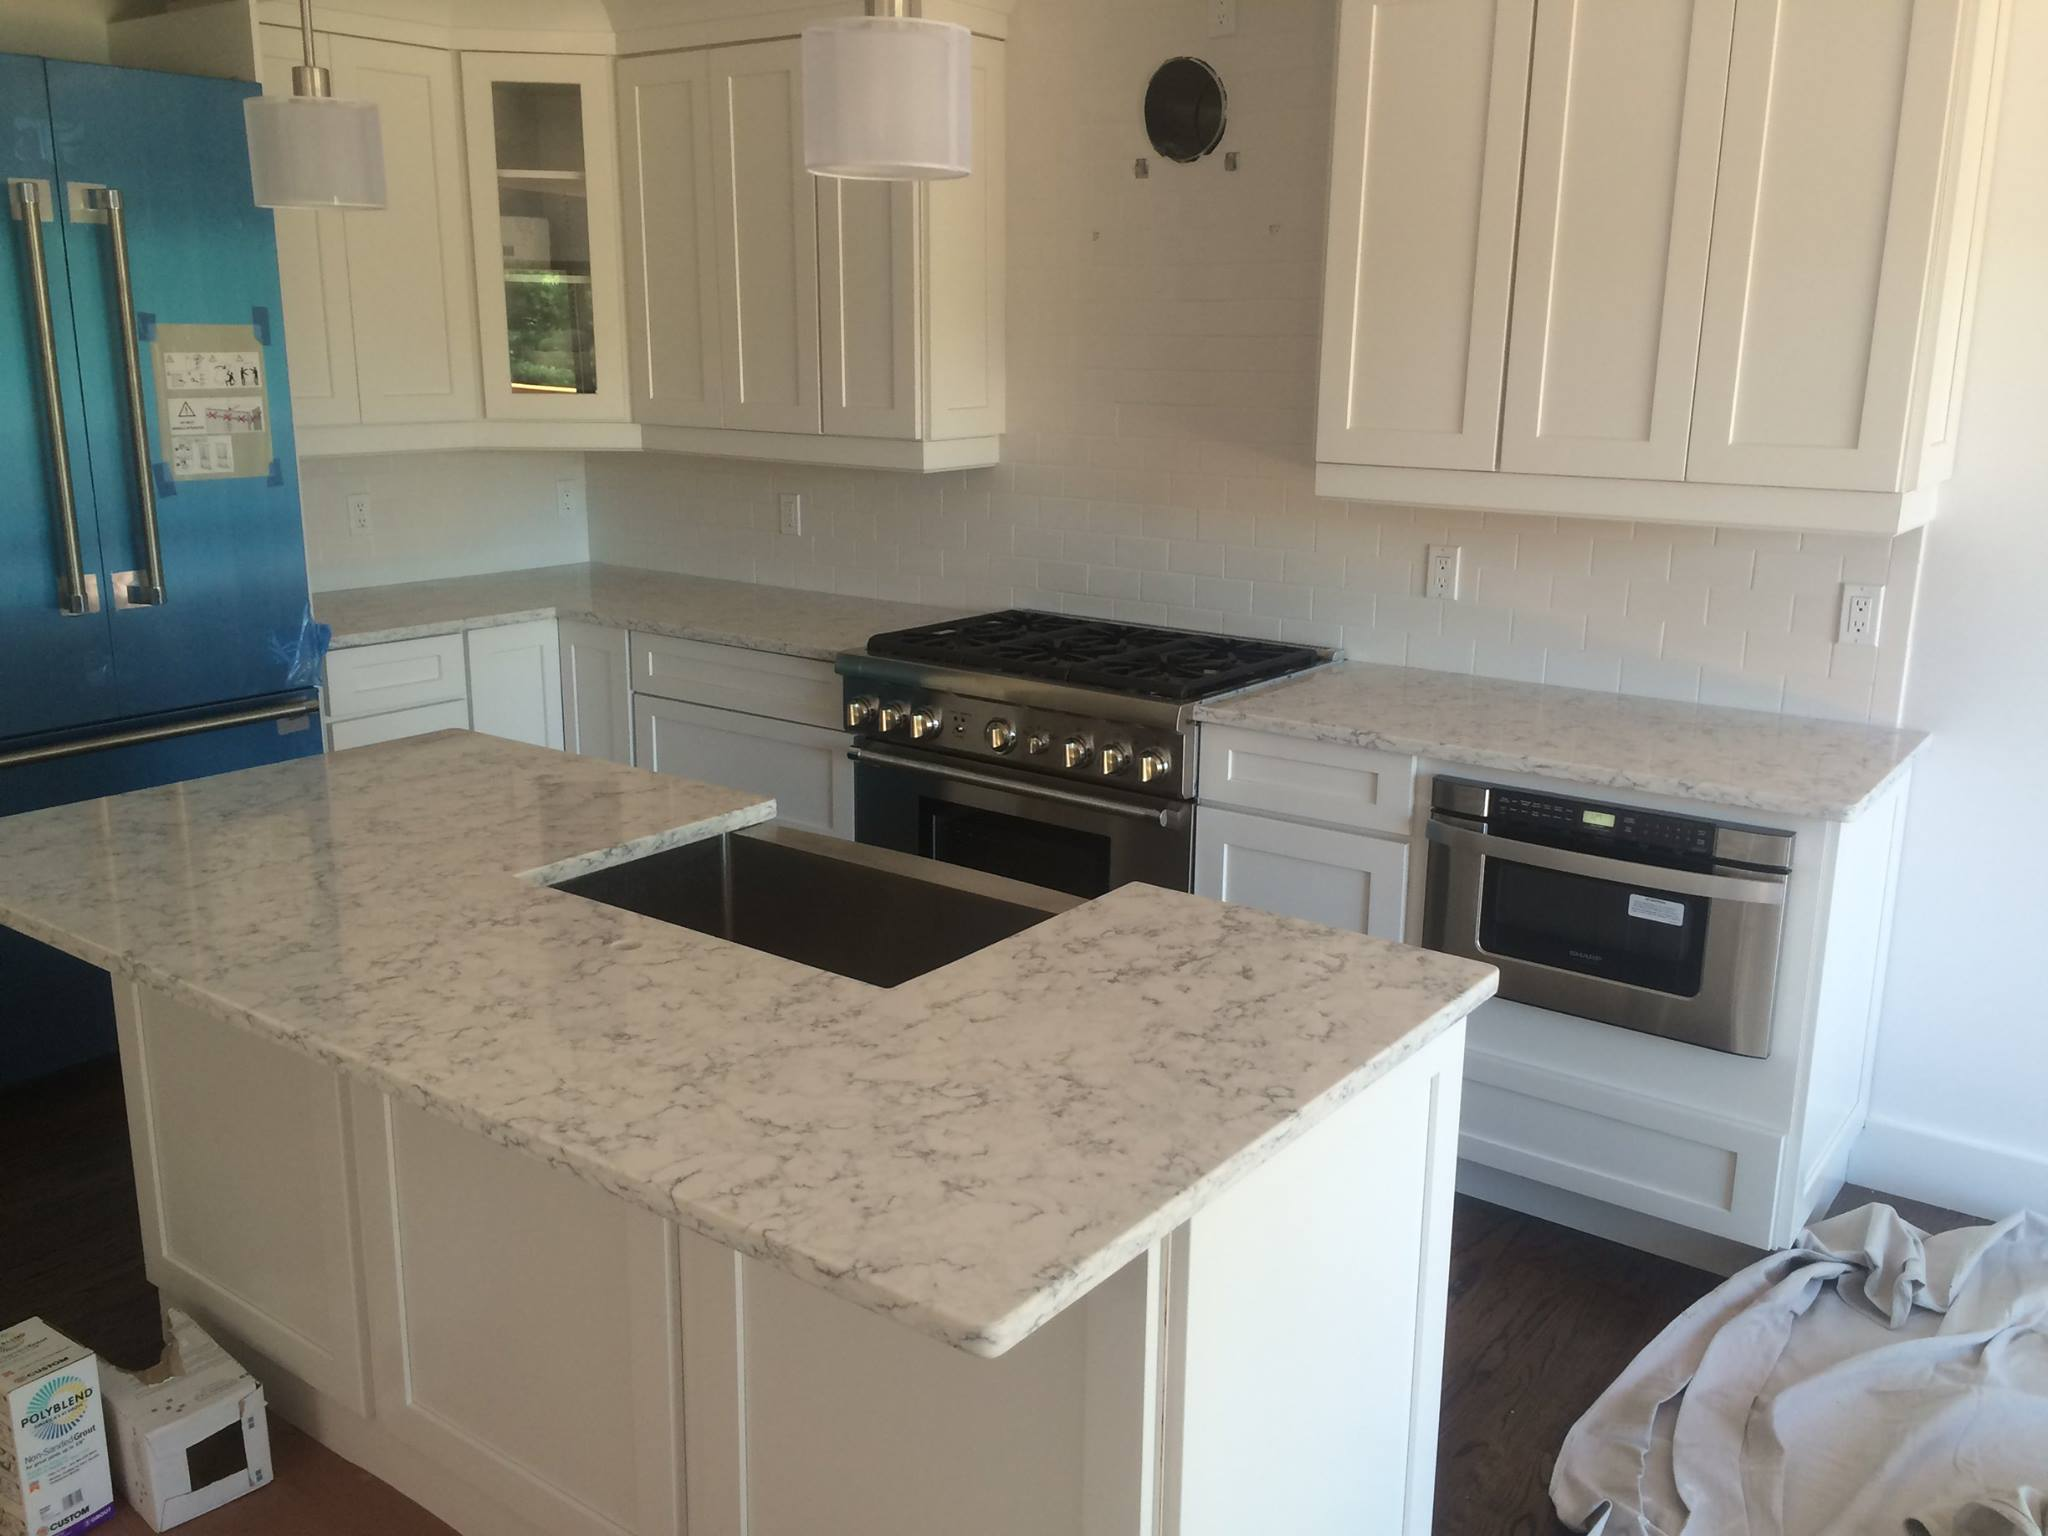 long island NY white countertops and cabinets kitchen island